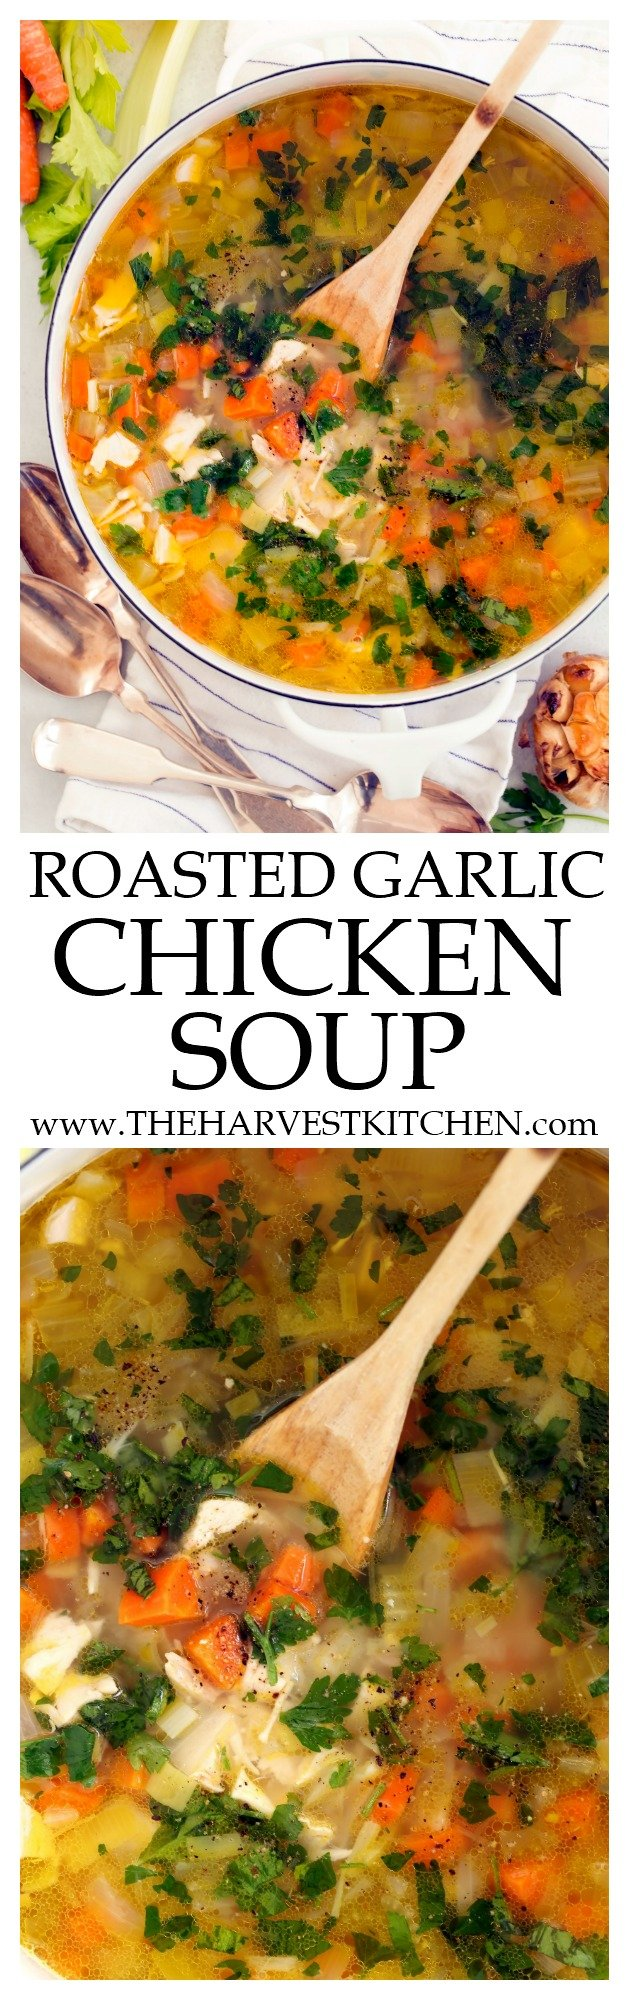 This Roasted Garlic Chicken Soup is loaded with chicken and vegetables all simmered in a delicious roasted garlic broth chicken broth